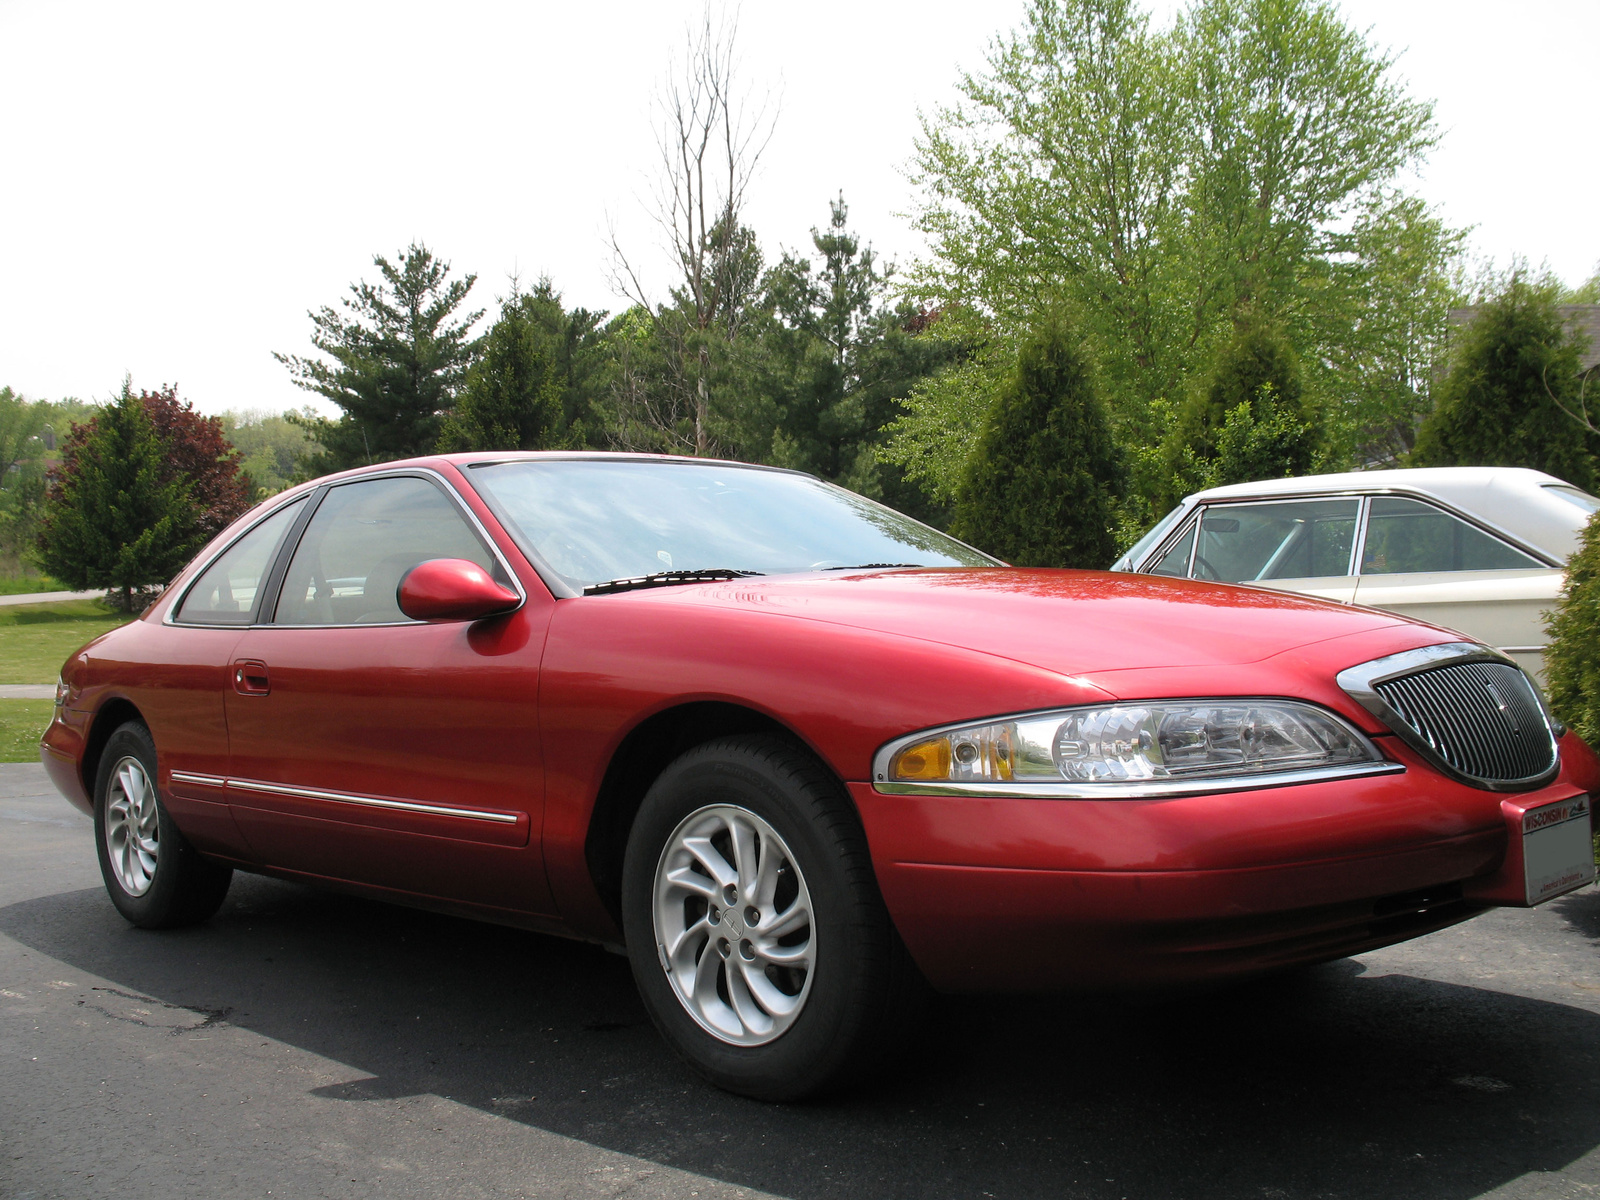 1998 Lincoln Mark VIII 2 Dr STD Coupe picture